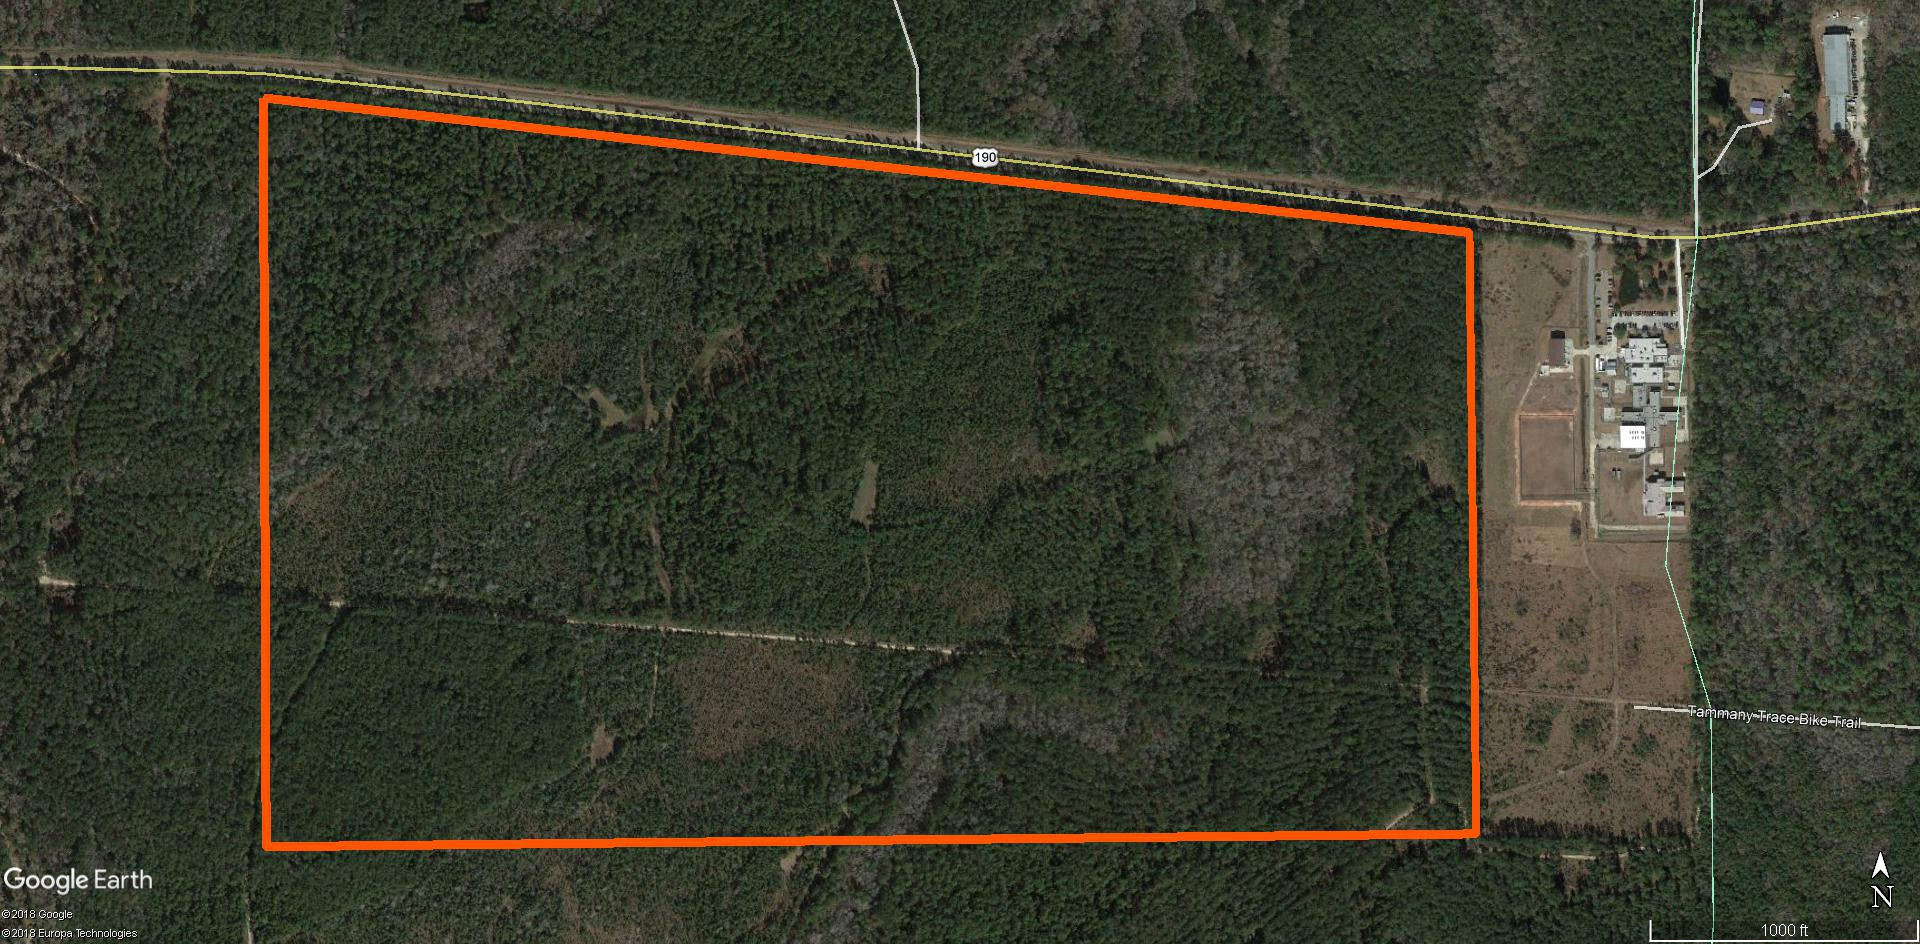 Aerial showing boundary of 258 acre parcel